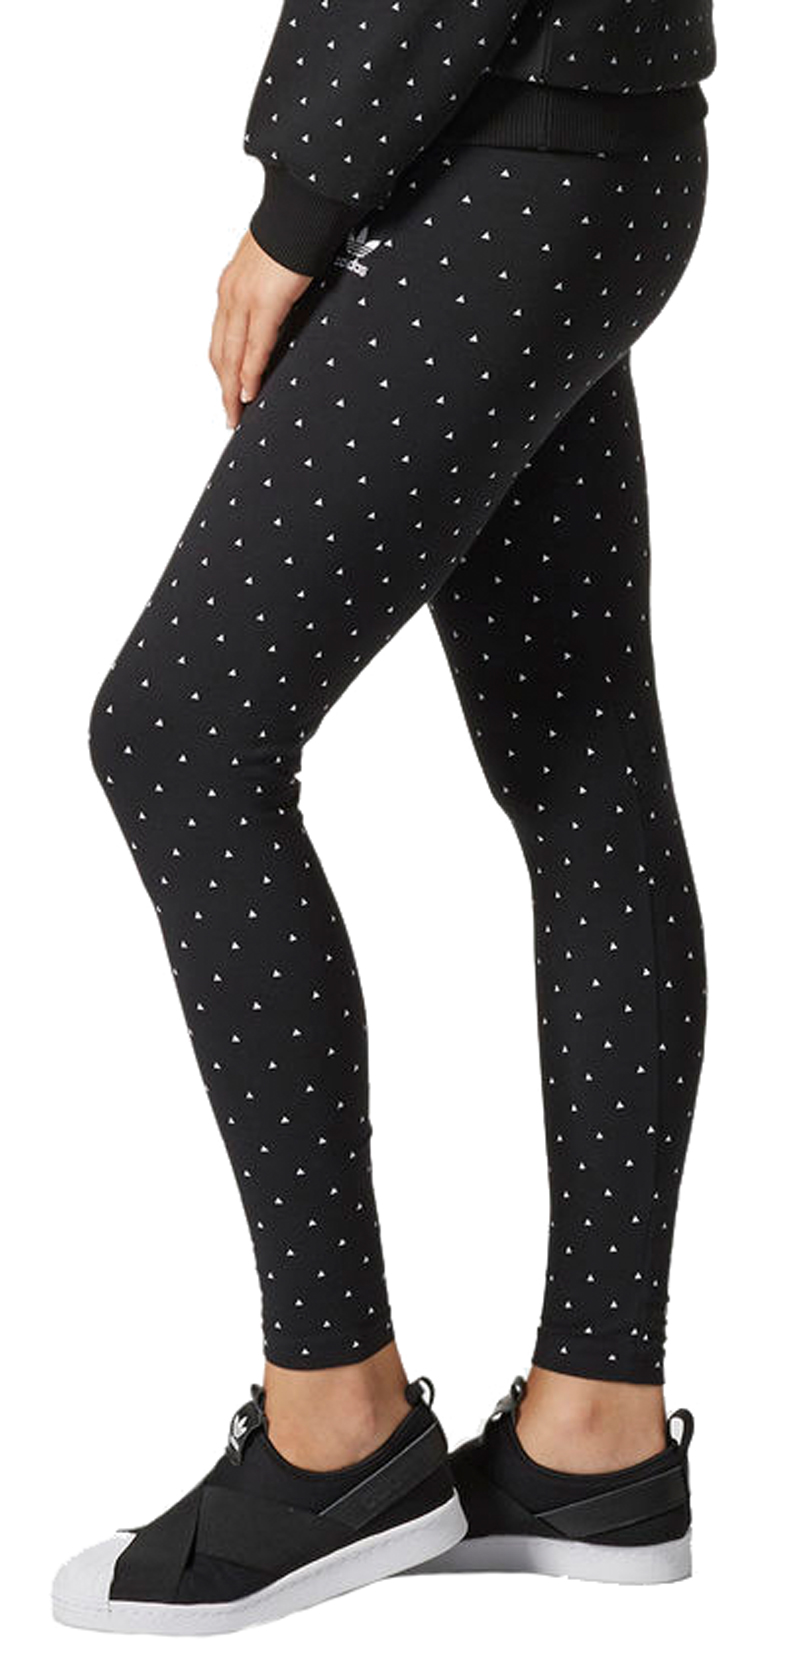 a9749f6fc3287 Adidas Leggings Women's Stretch Trousers Sports Pants Trackies ...